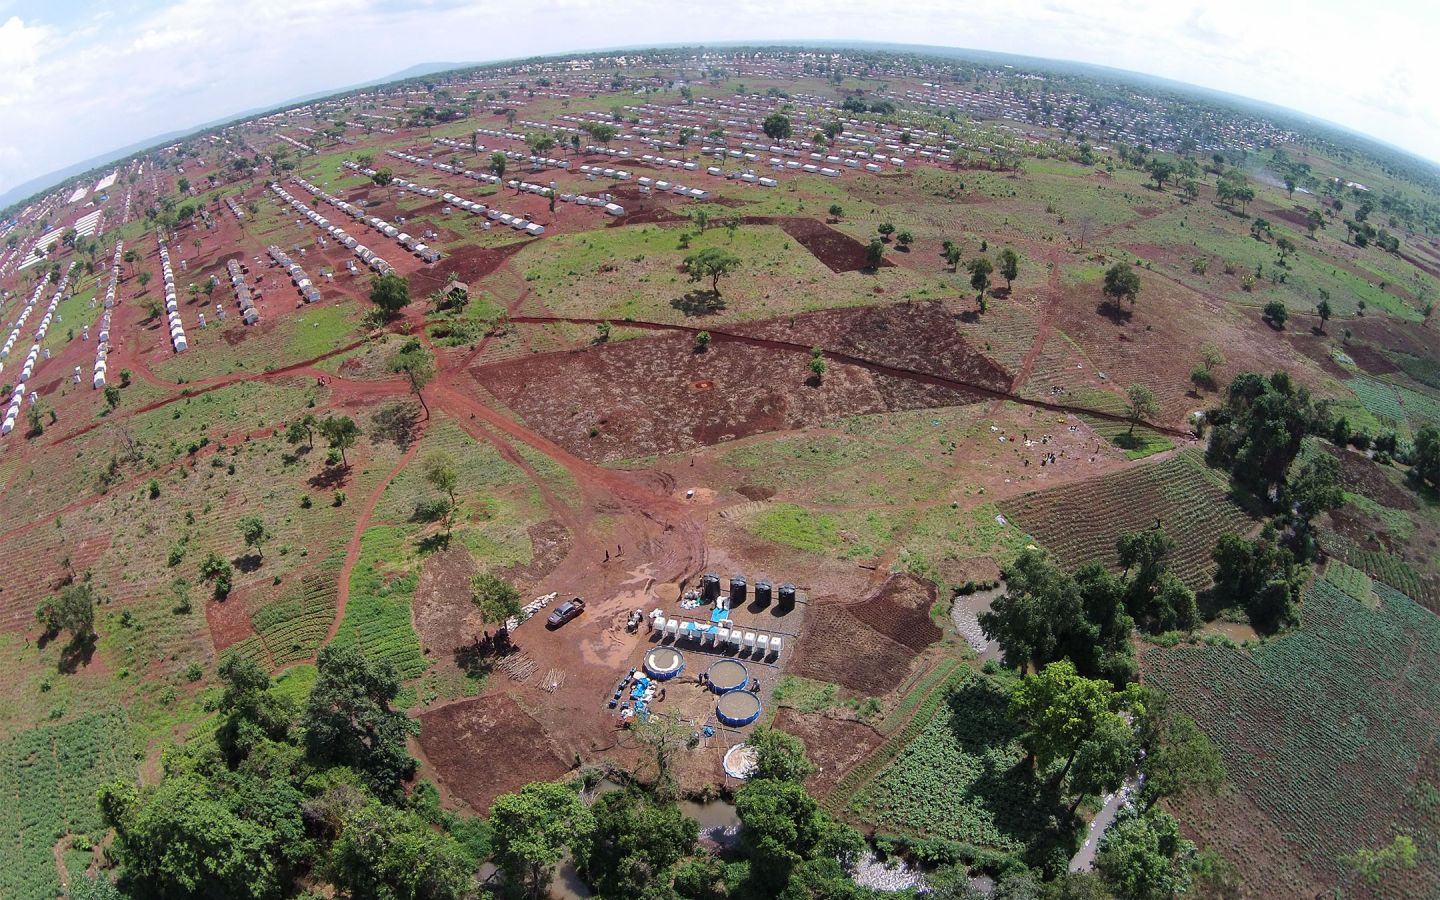 Aerial view of part of Nyarugusu Refugee Camp, Tanzania